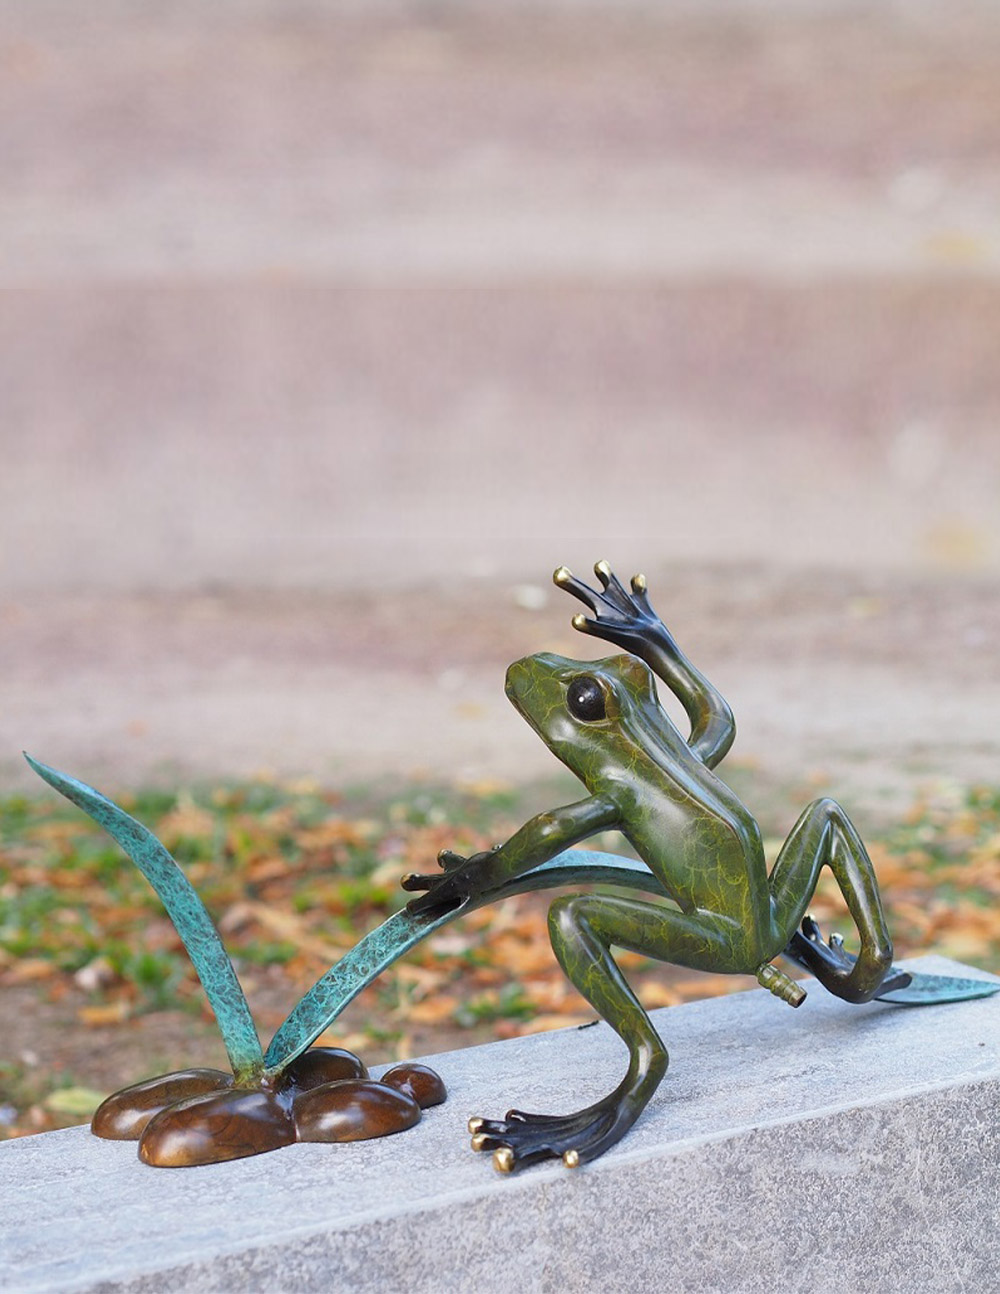 FO 60 Solid Bronze Sculpture Jumping Frog Fountain | Avant Garden Guernsey